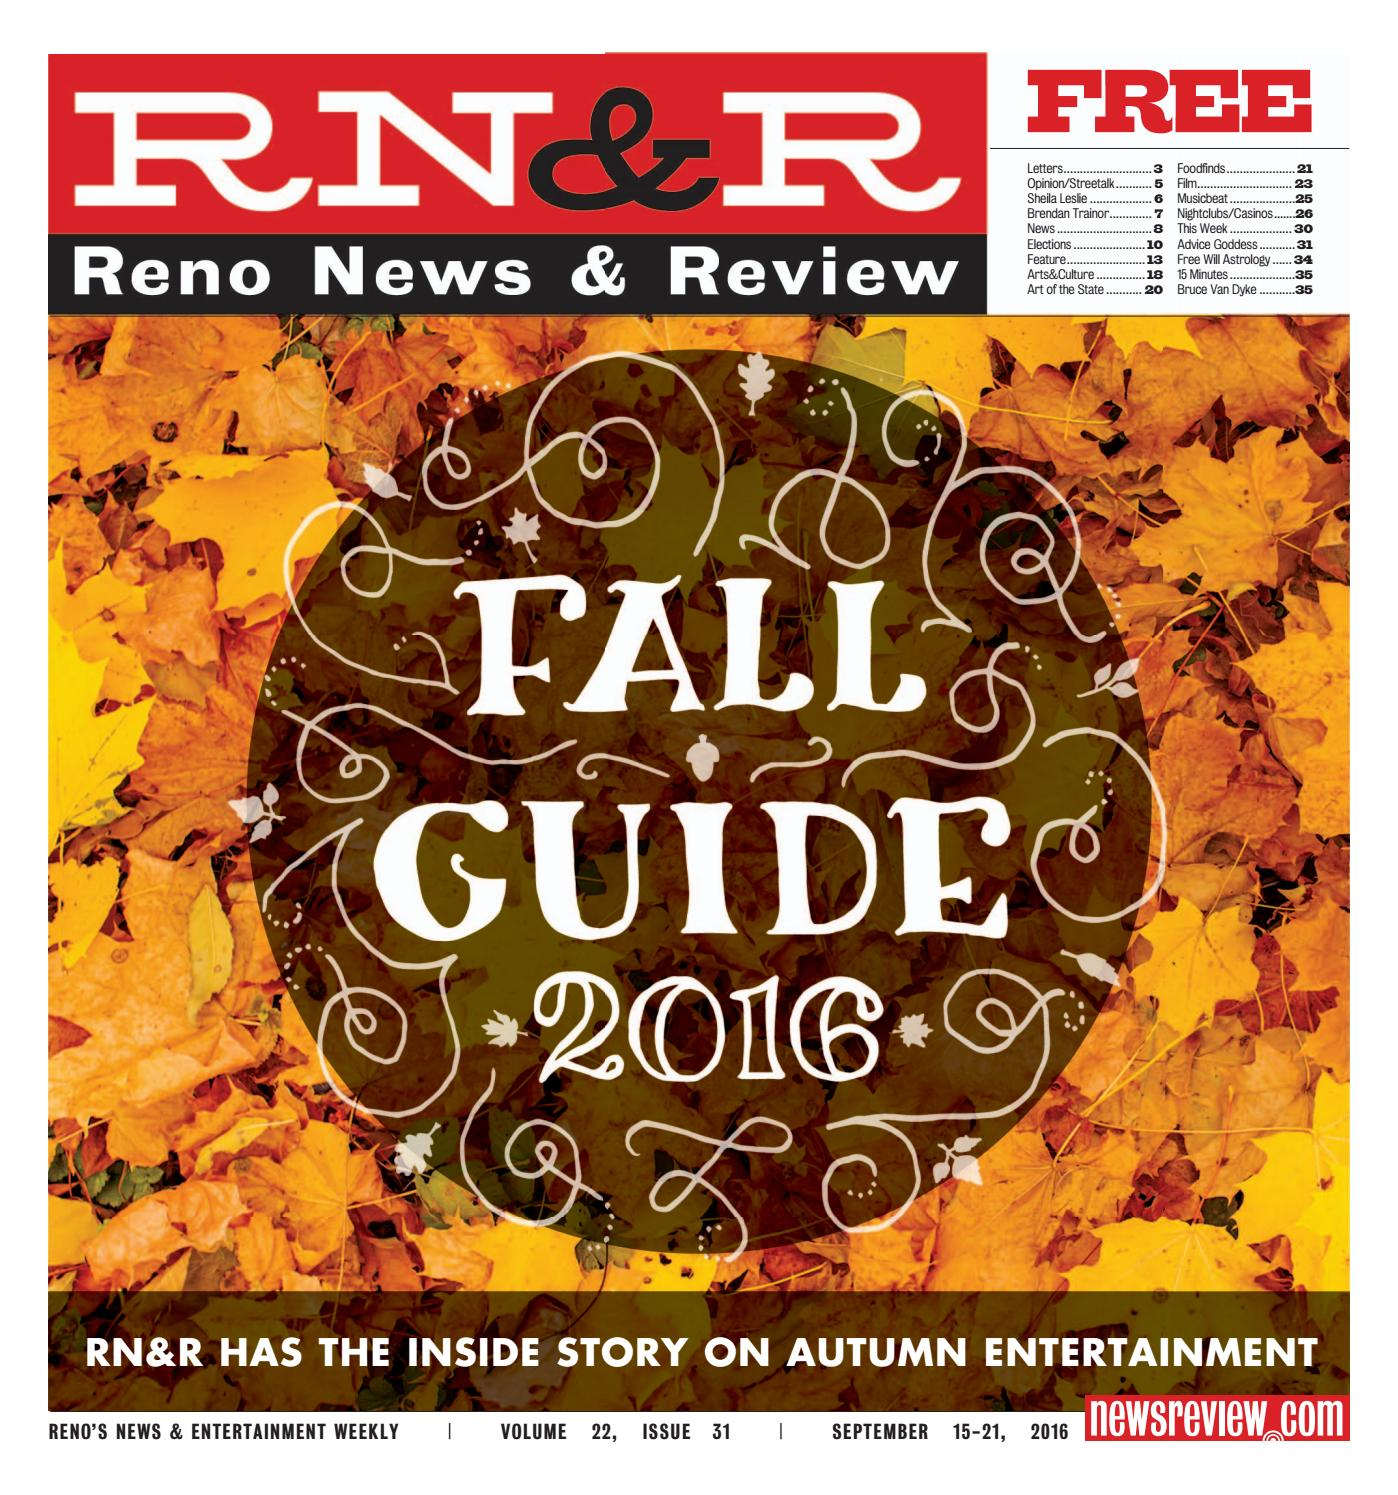 r-2016-09-15 by News & Review - issuu